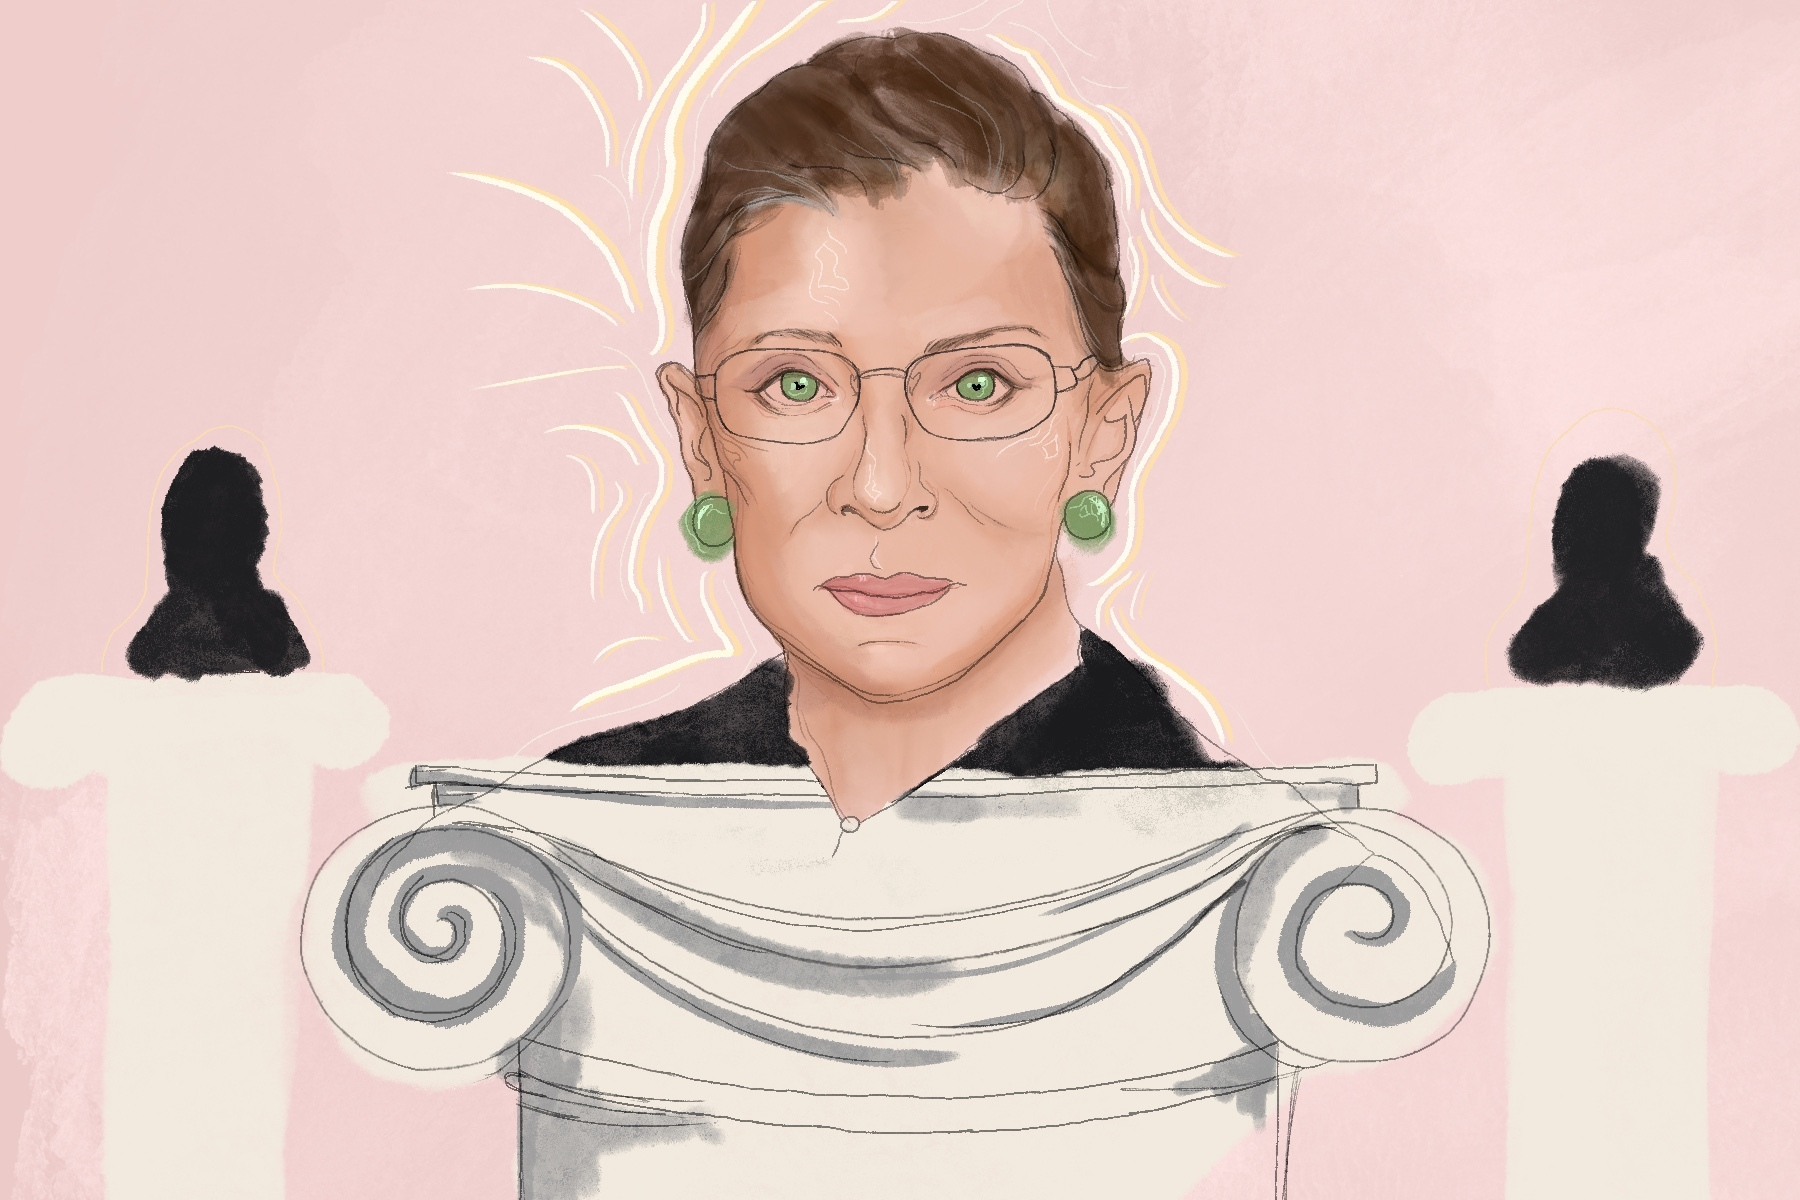 Illustration by Emmalia Godshall for an article on Ruth Bader Ginsburg